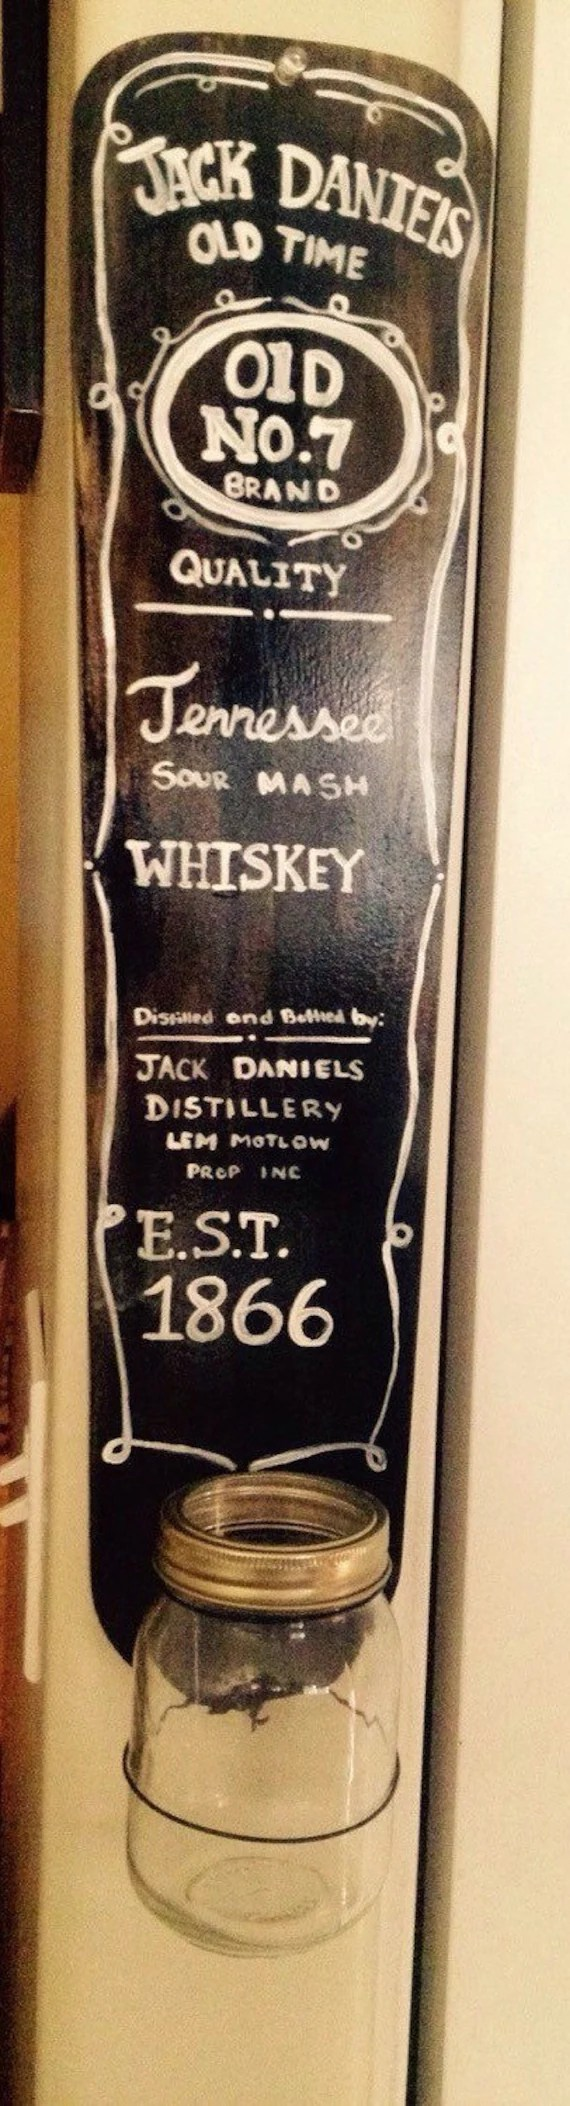 Jack daniels wall decor by Rockabillymadness on Etsy